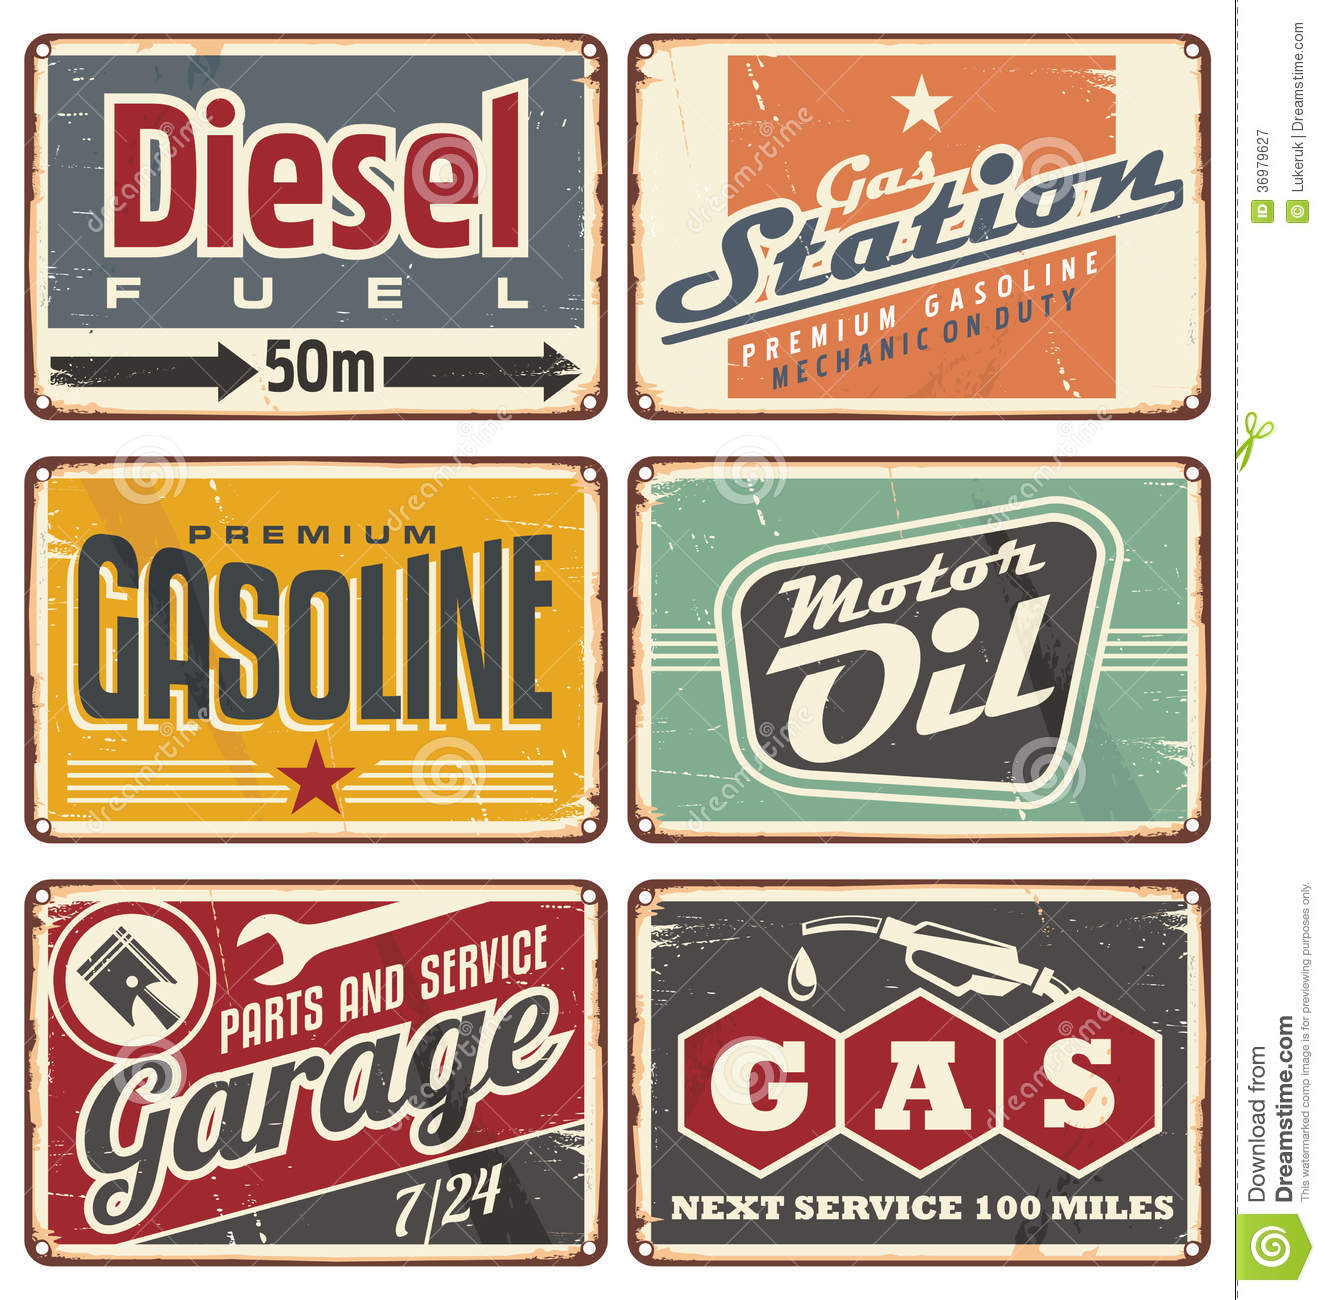 Gas Stations And Car Service Vintage Tin Signs Stock. Ruptured Appendix Signs Of Stroke. Hospital Acquired Signs. American Flag Signs Of Stroke. Subject Signs. Latex Signs. Coffee Mug Signs. Plexiglass Signs. Airport Dubai Signs